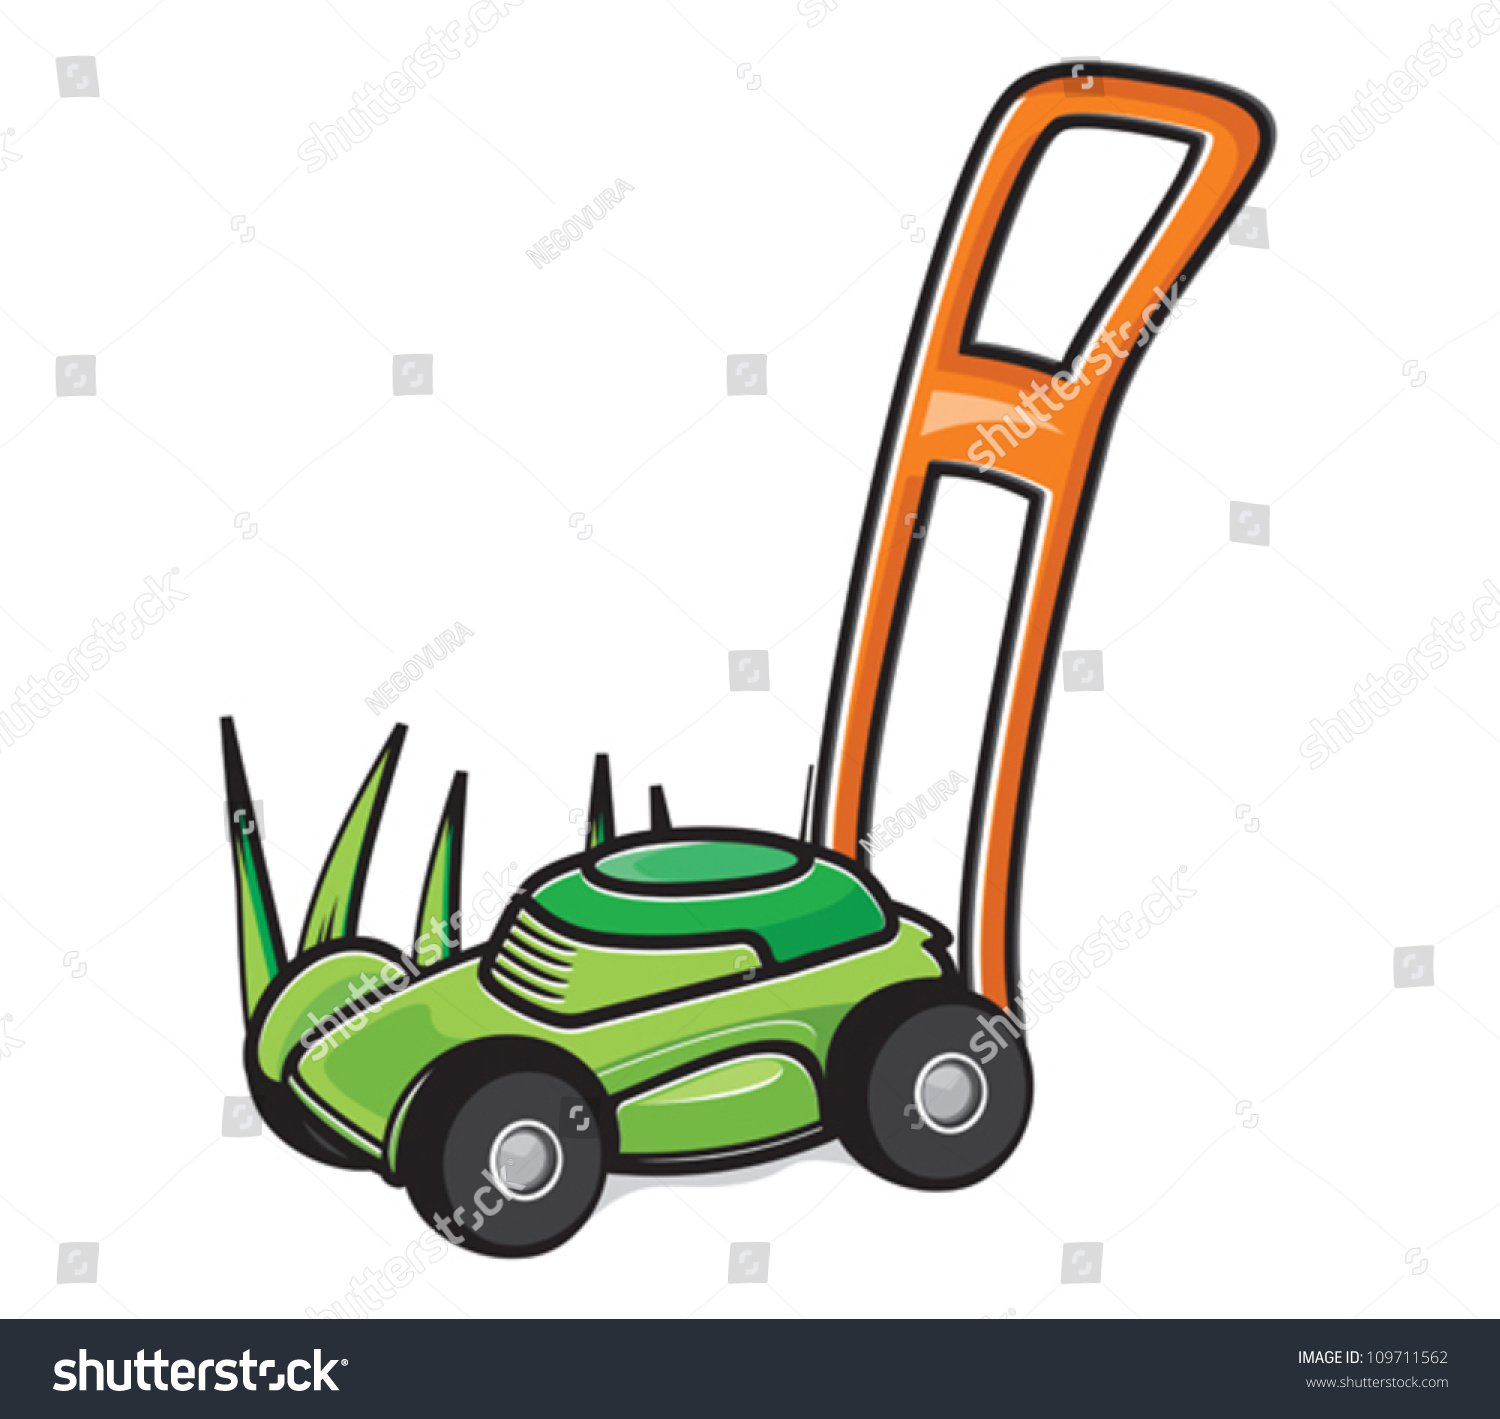 lawn mower vector - photo #21